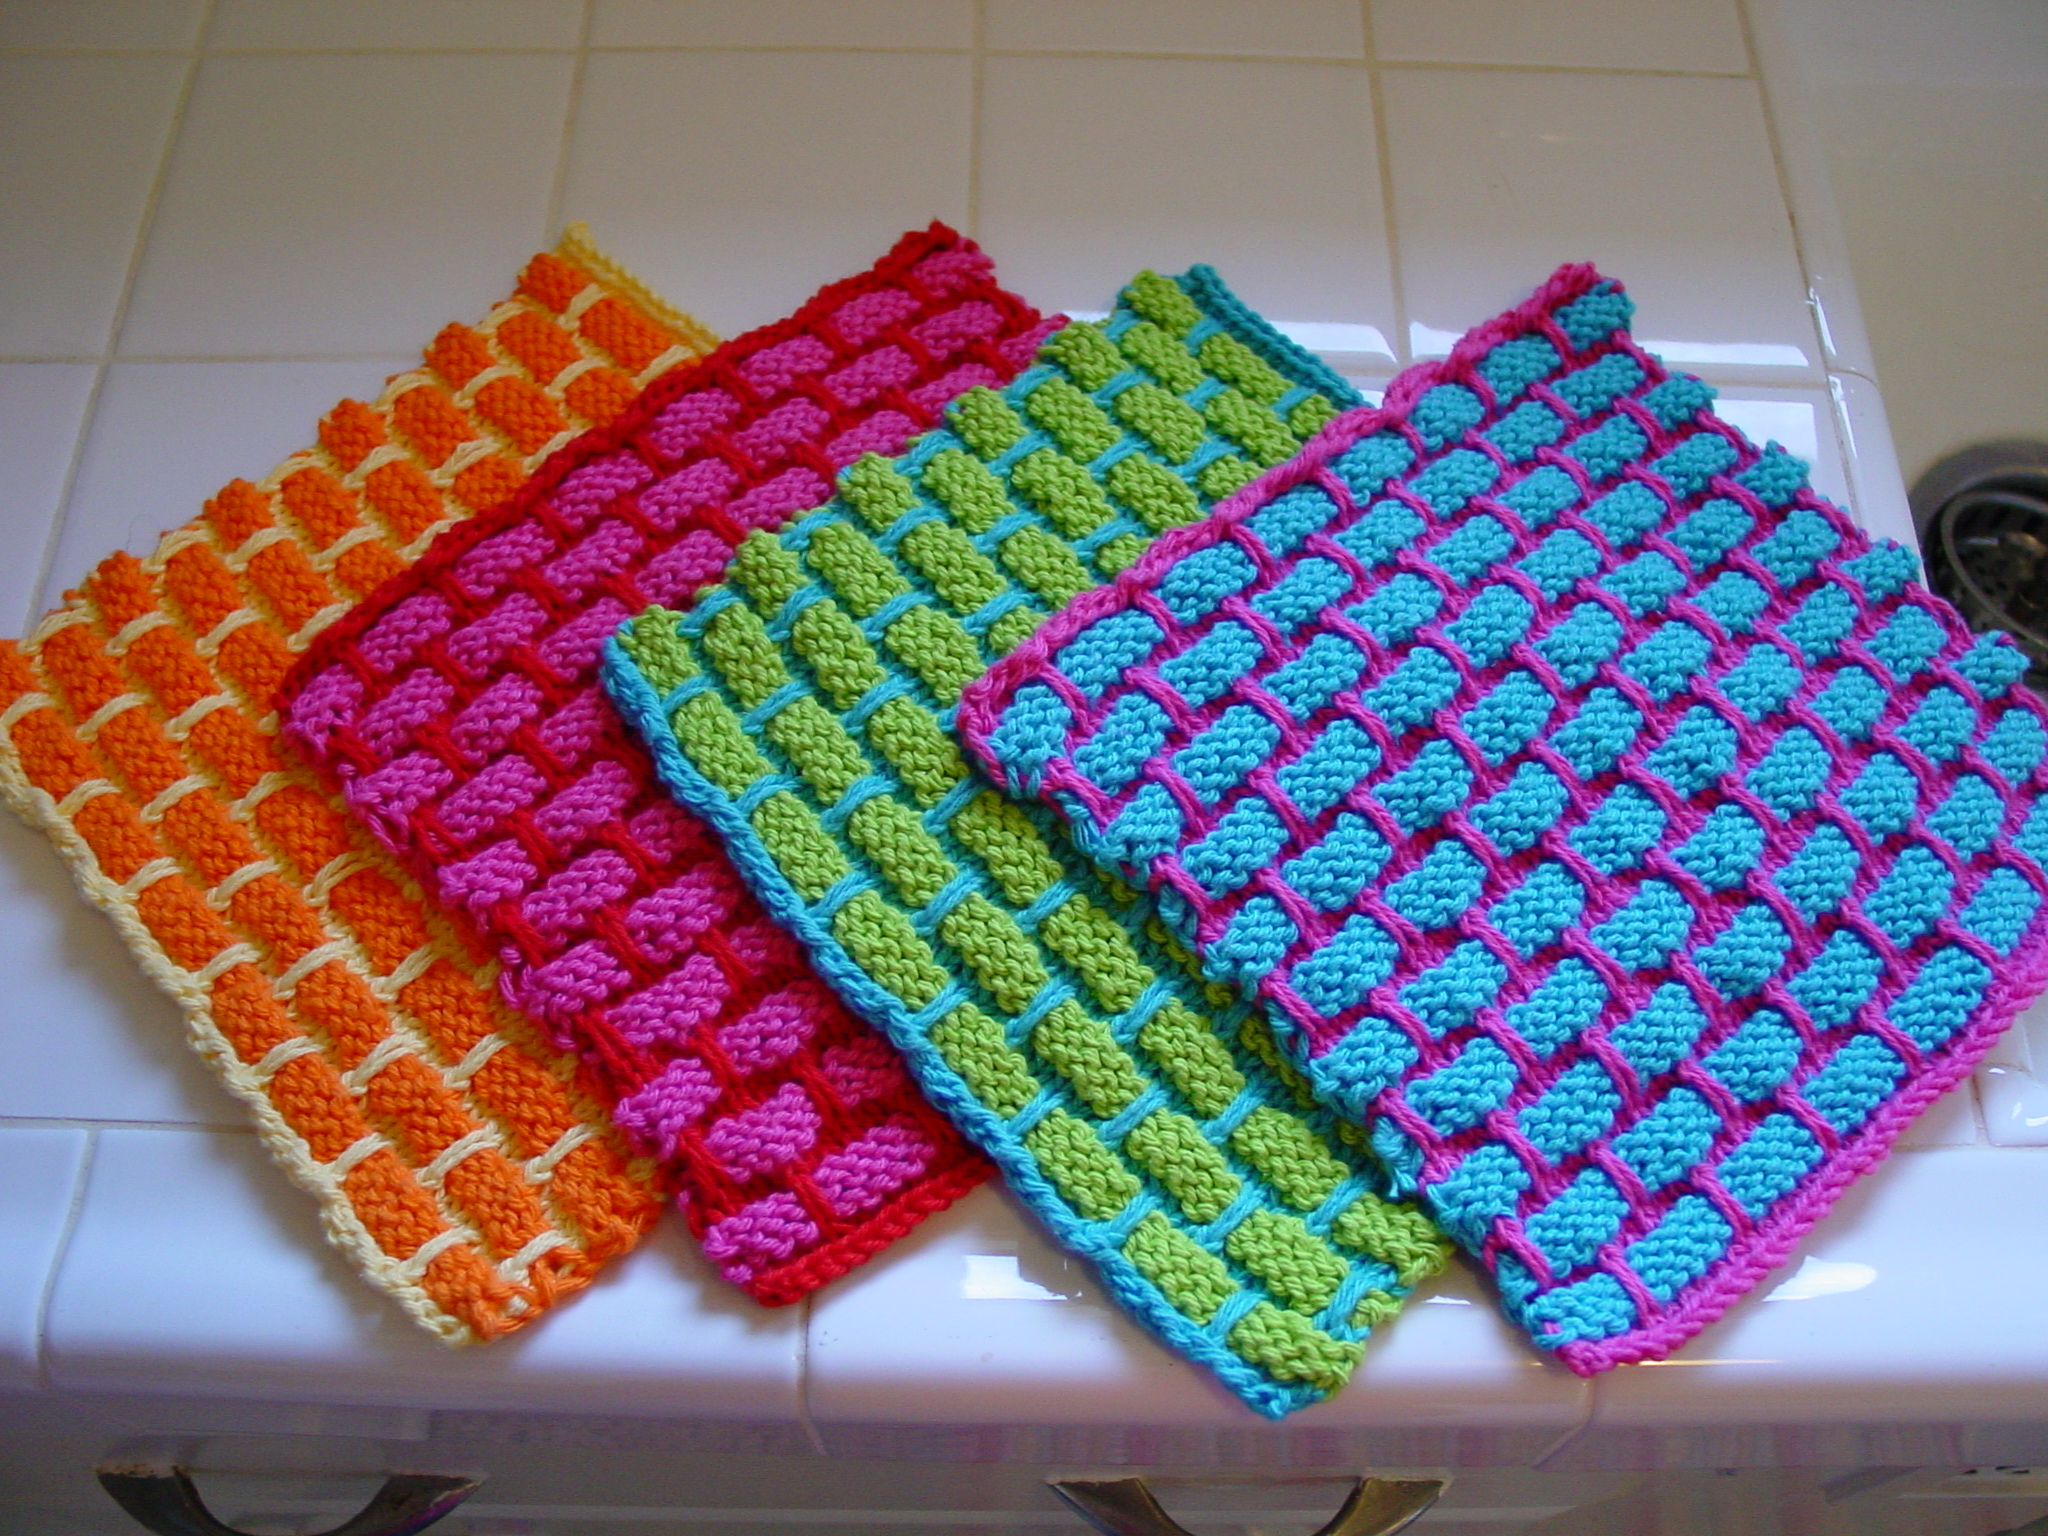 Free Knitting Pattern Turkey Dishcloth : File:Dishcloths.jpg - Wikimedia Commons